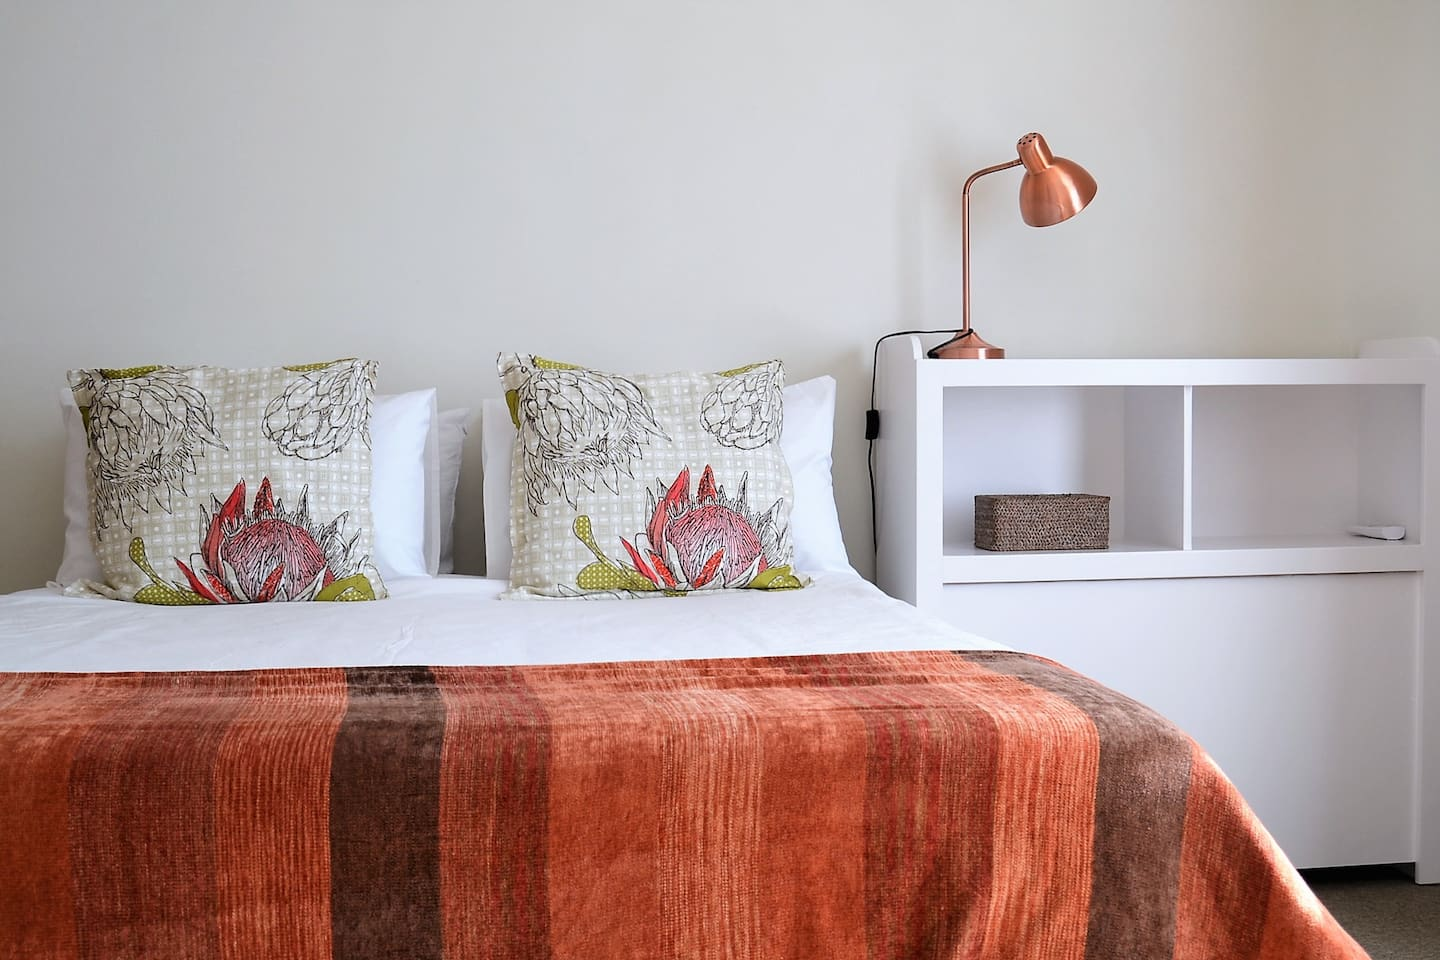 Time to relax on this bed. 100% cotton bedding for your comfort.